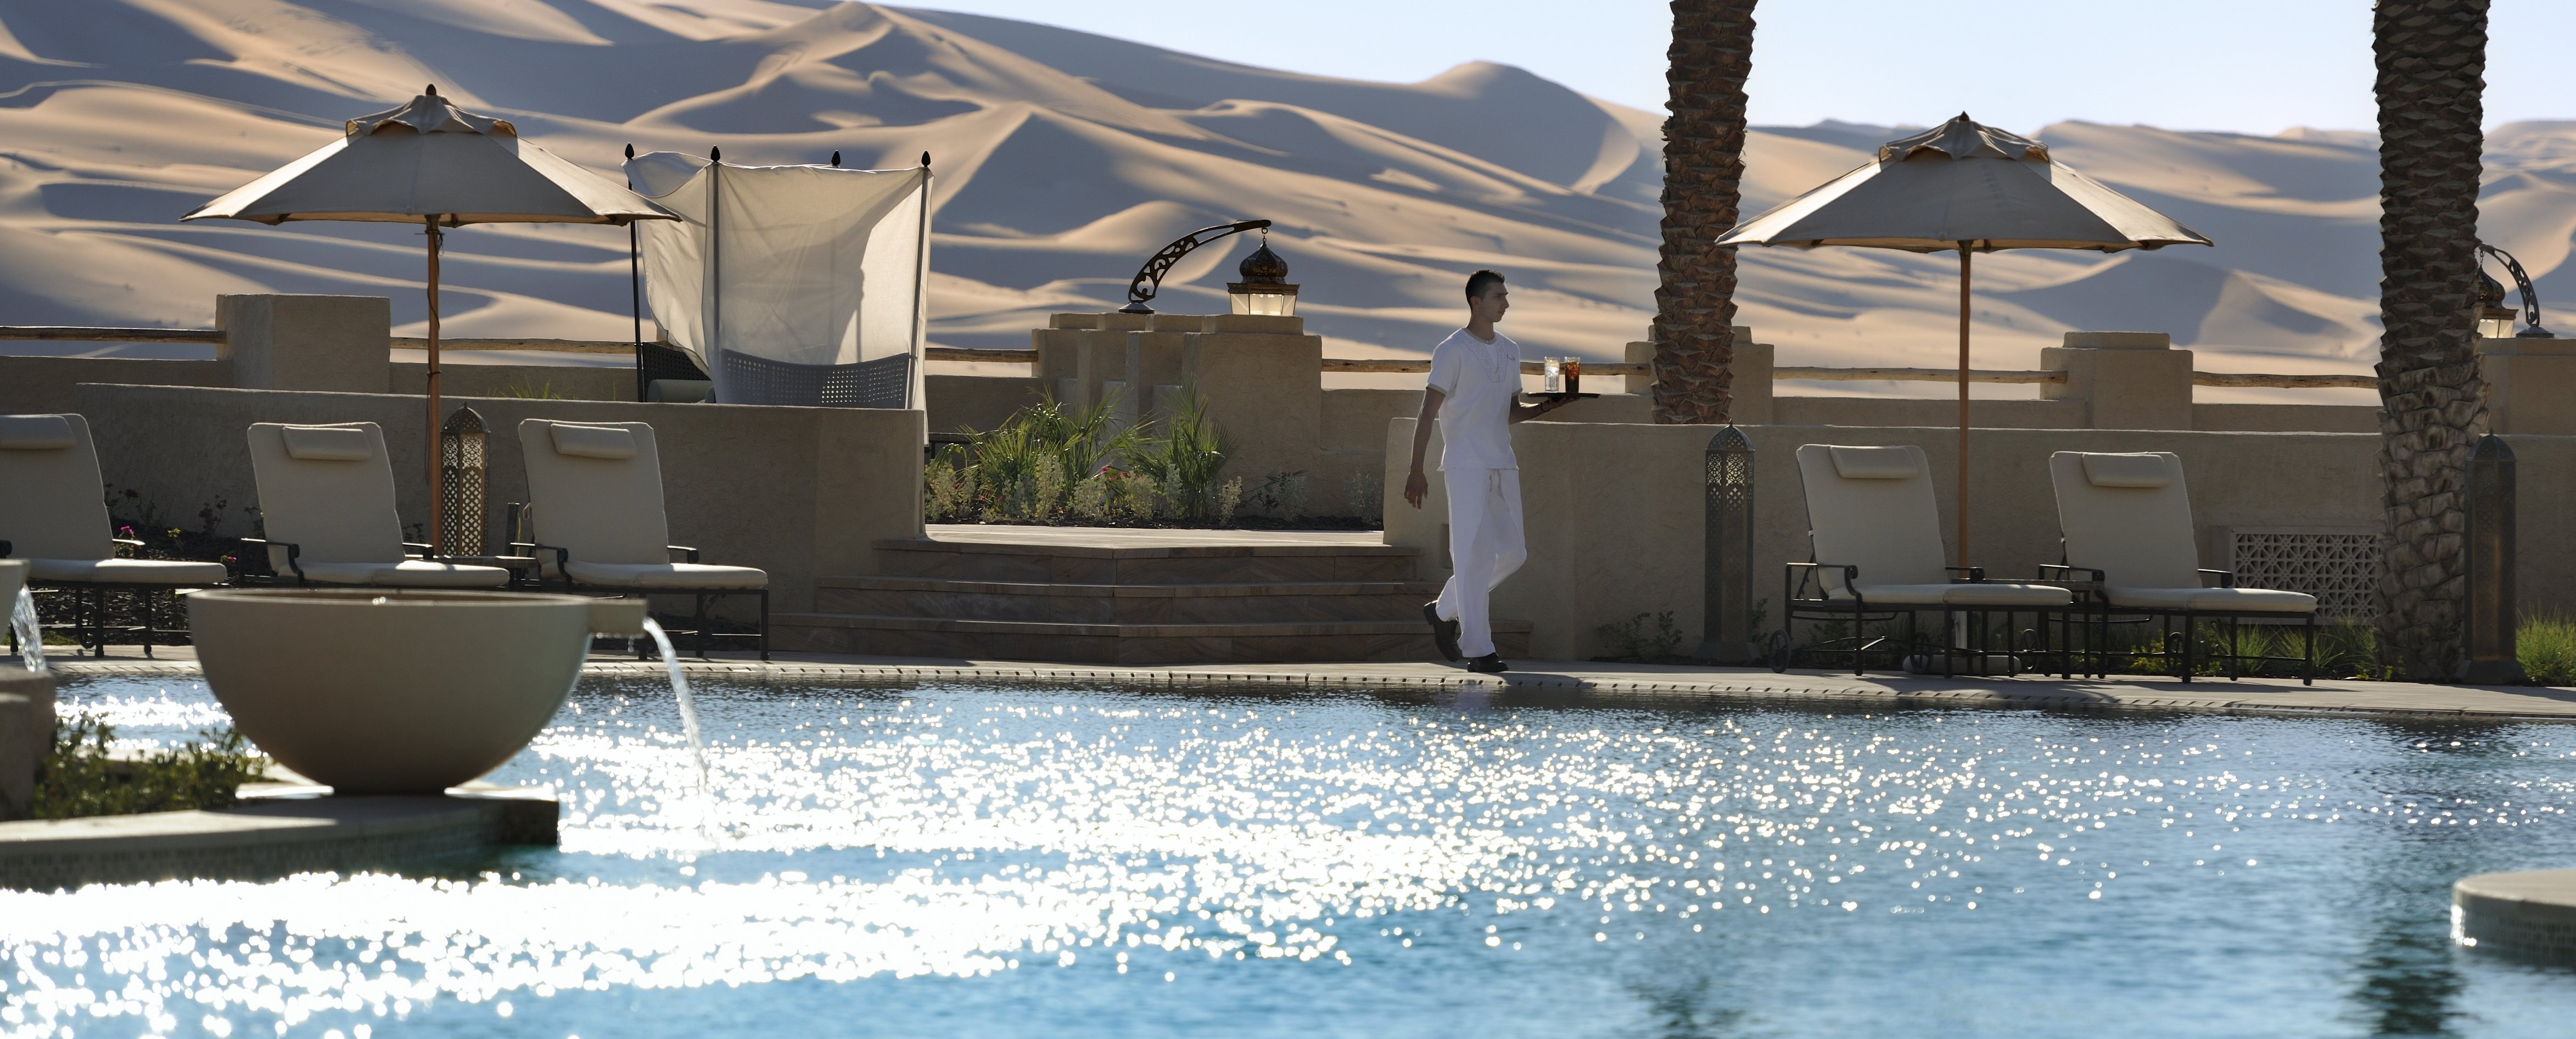 abu-dhabi-luxury-desert-resort